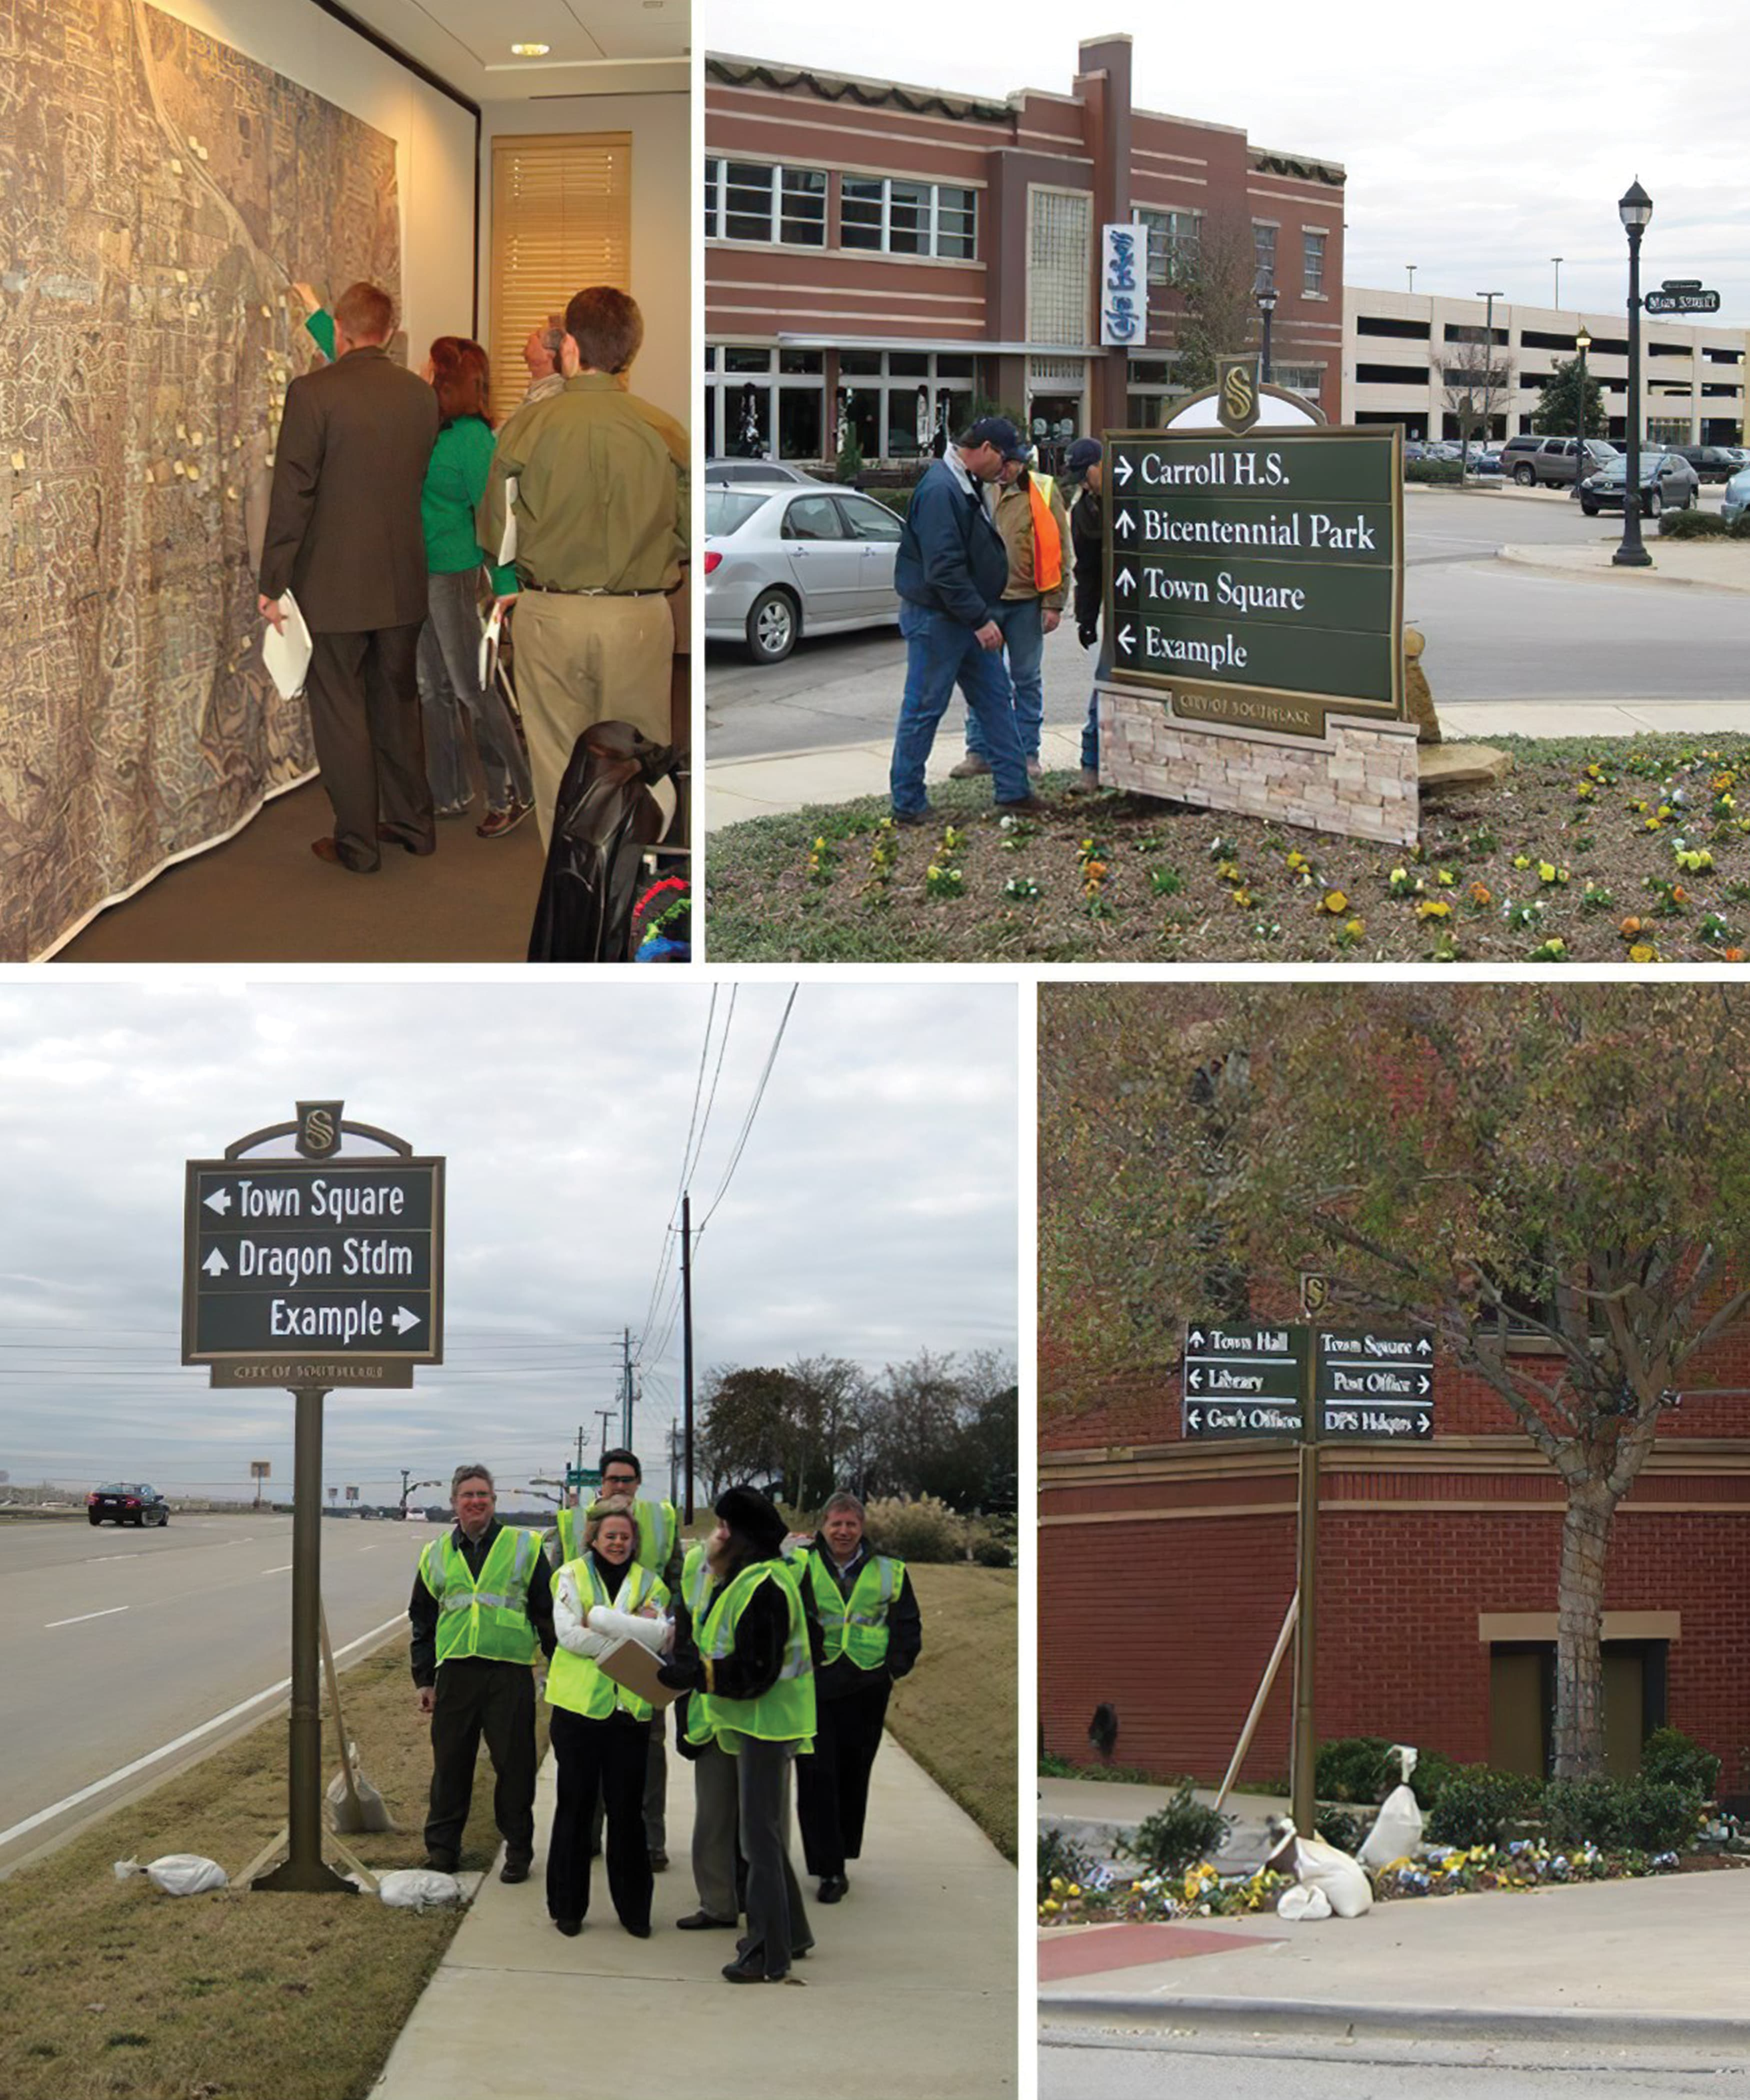 A number of photographs taken during the city review of the mock-ups of wayfinding signage.